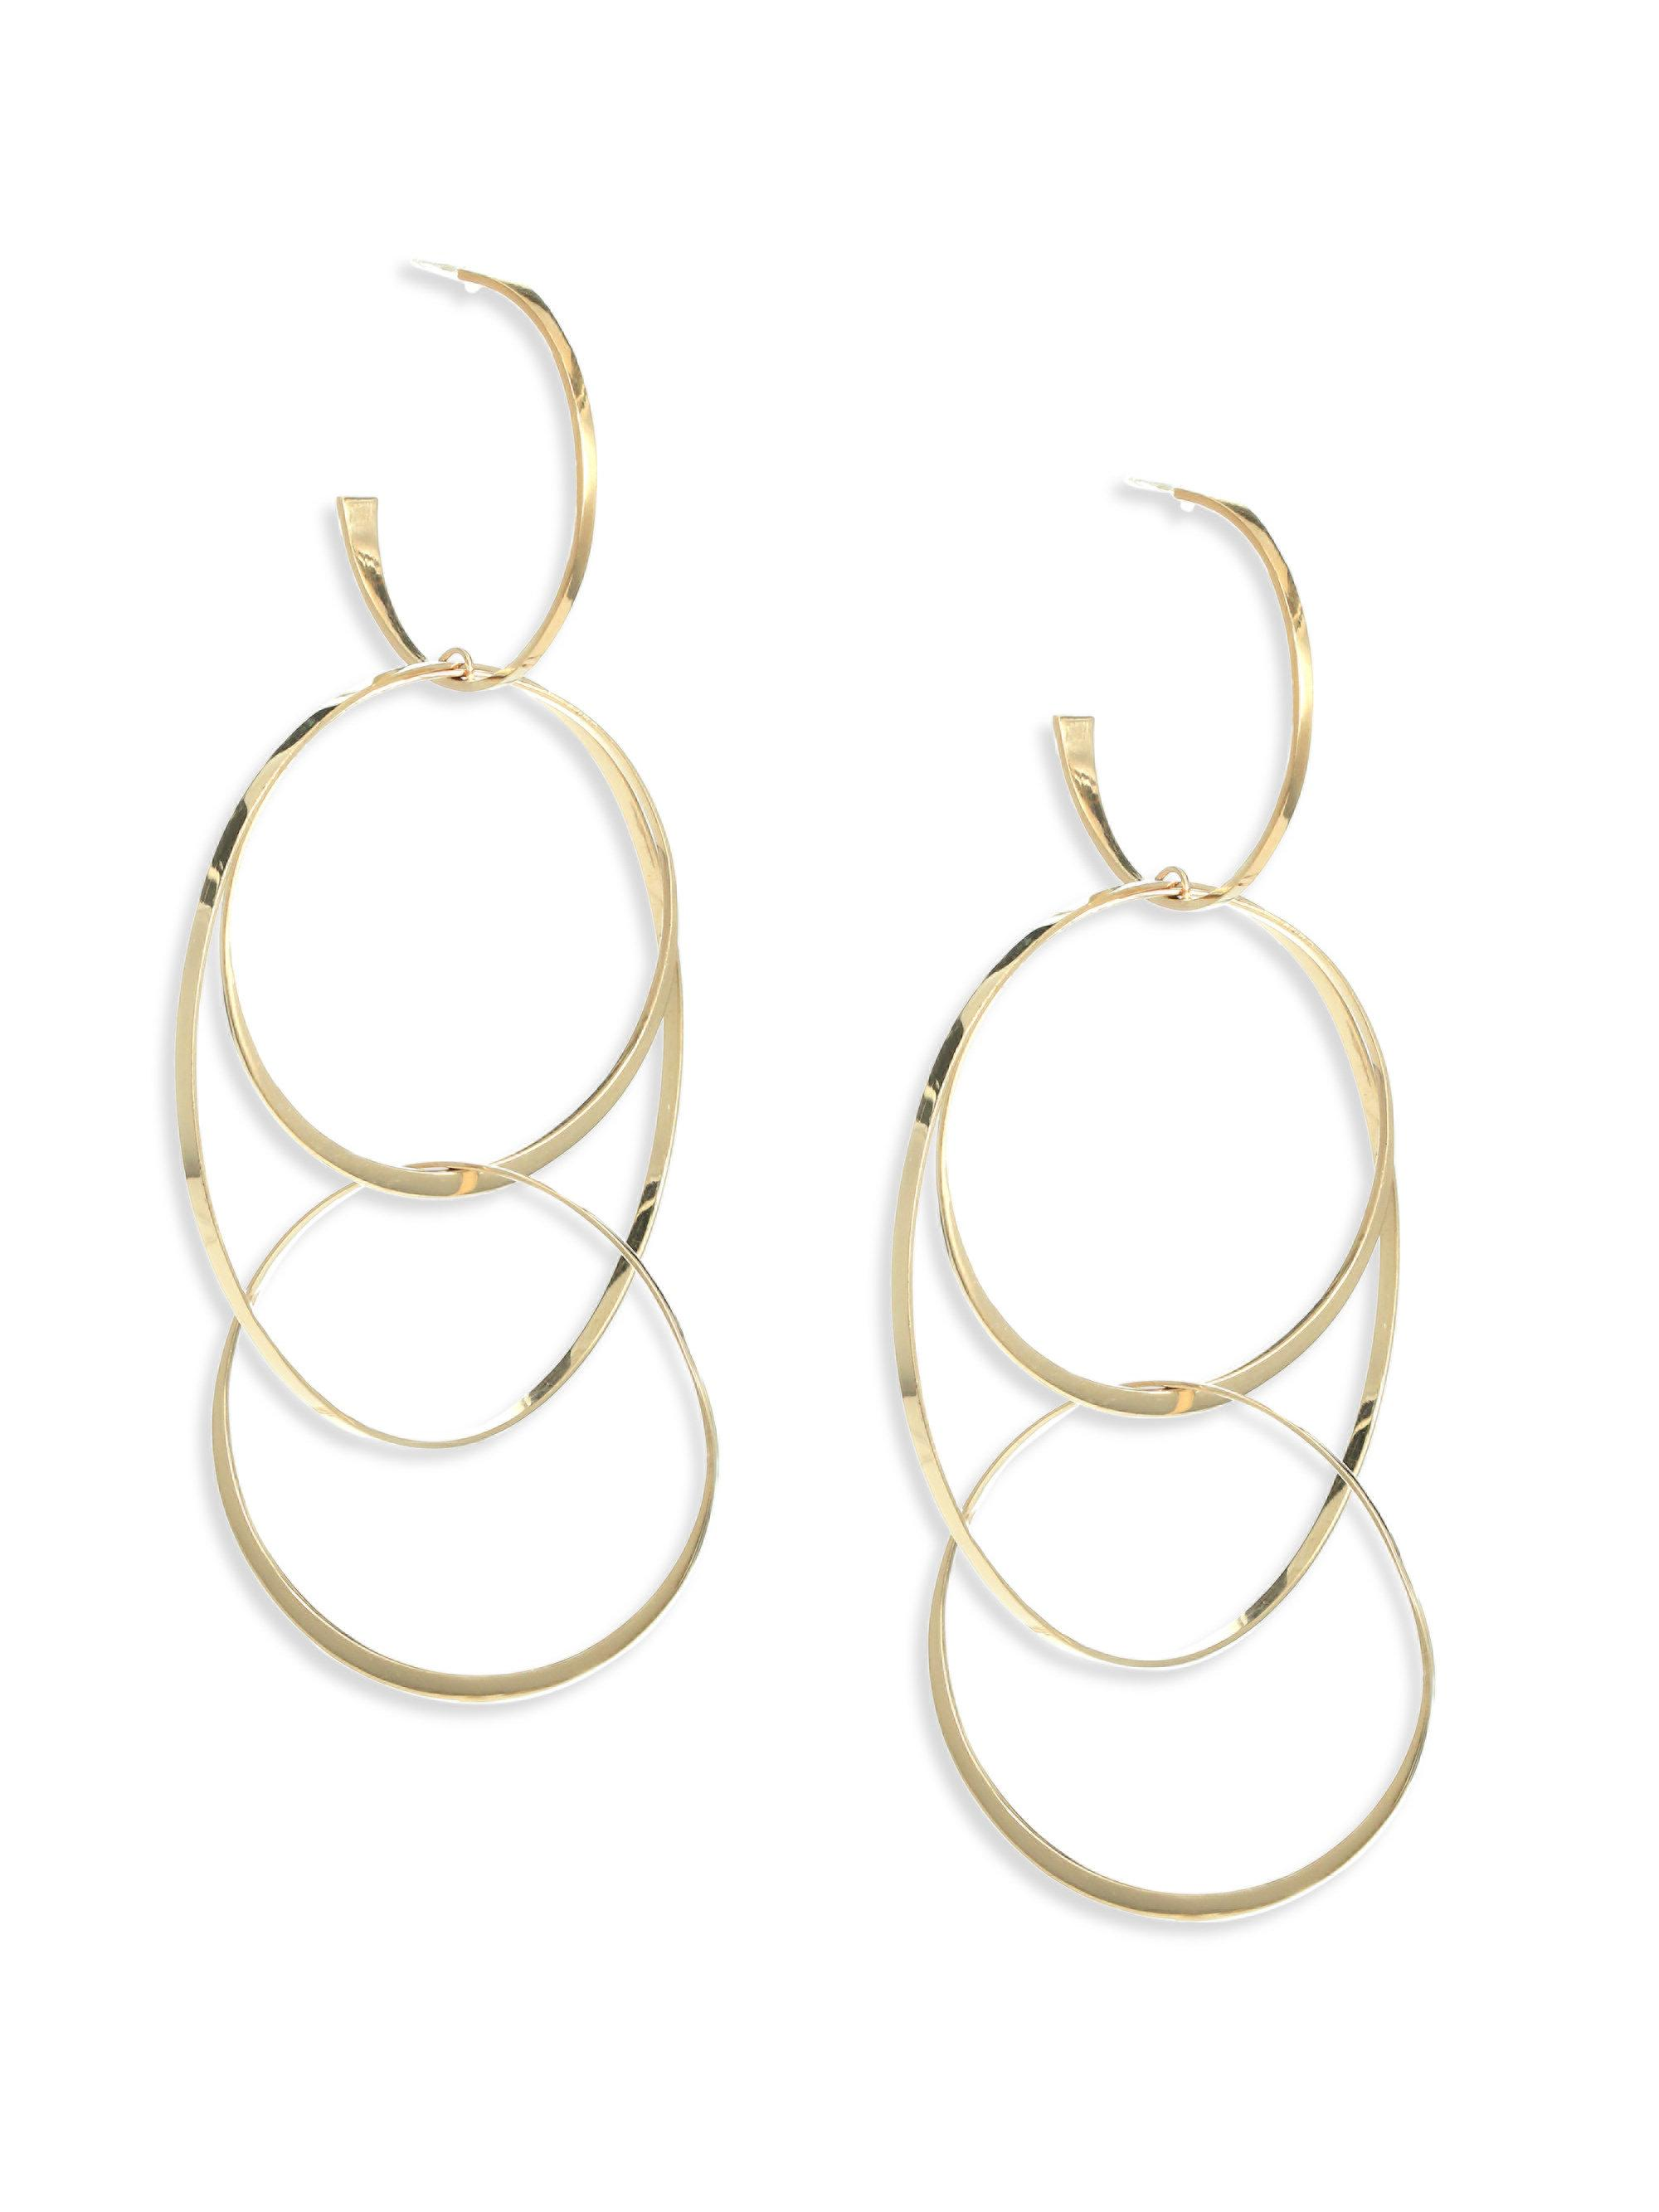 Lana Jewelry 14k Flat Hoop Earrings yz3U87Ug6X